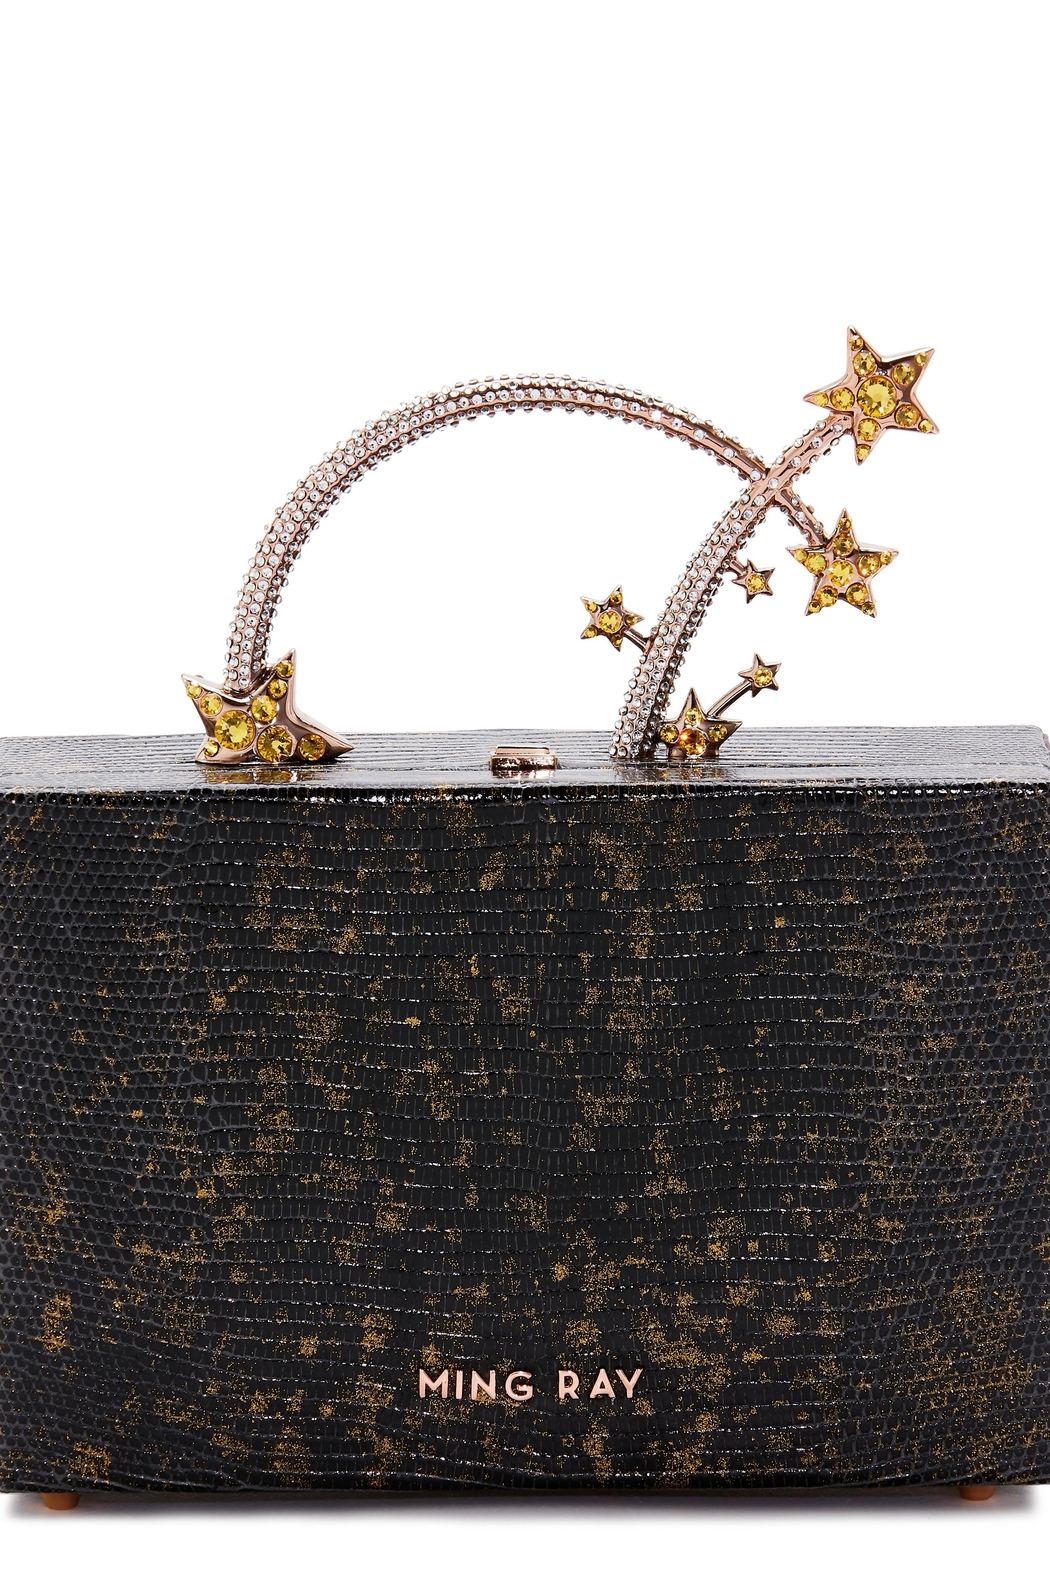 Ming Ray Black Lizard Clutch - Front Cropped Image